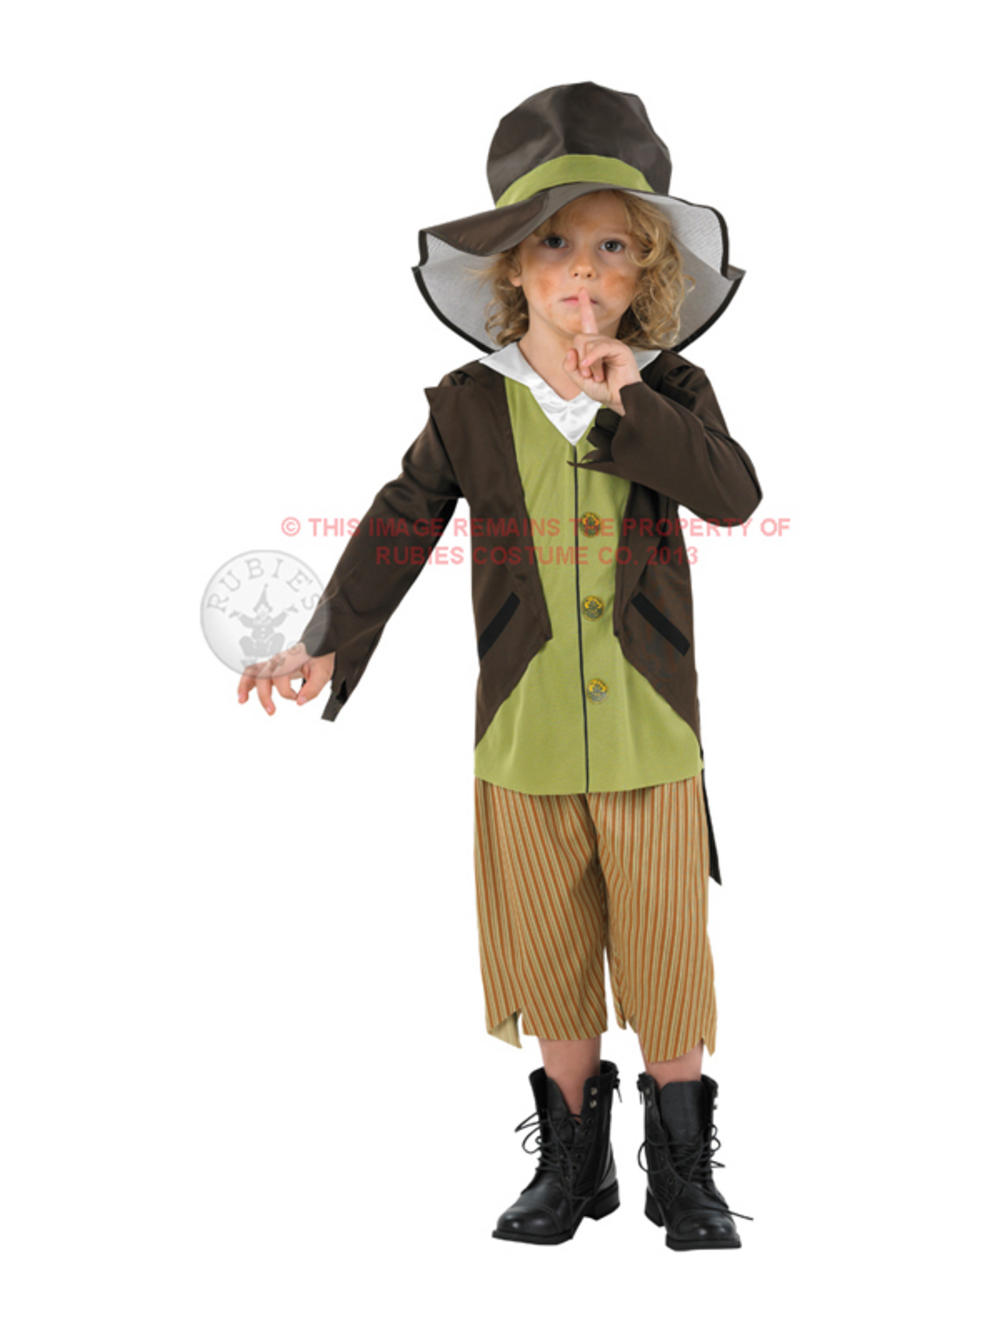 Child Victorian Pickpocket Poor Boy Oliver Twist Urchin